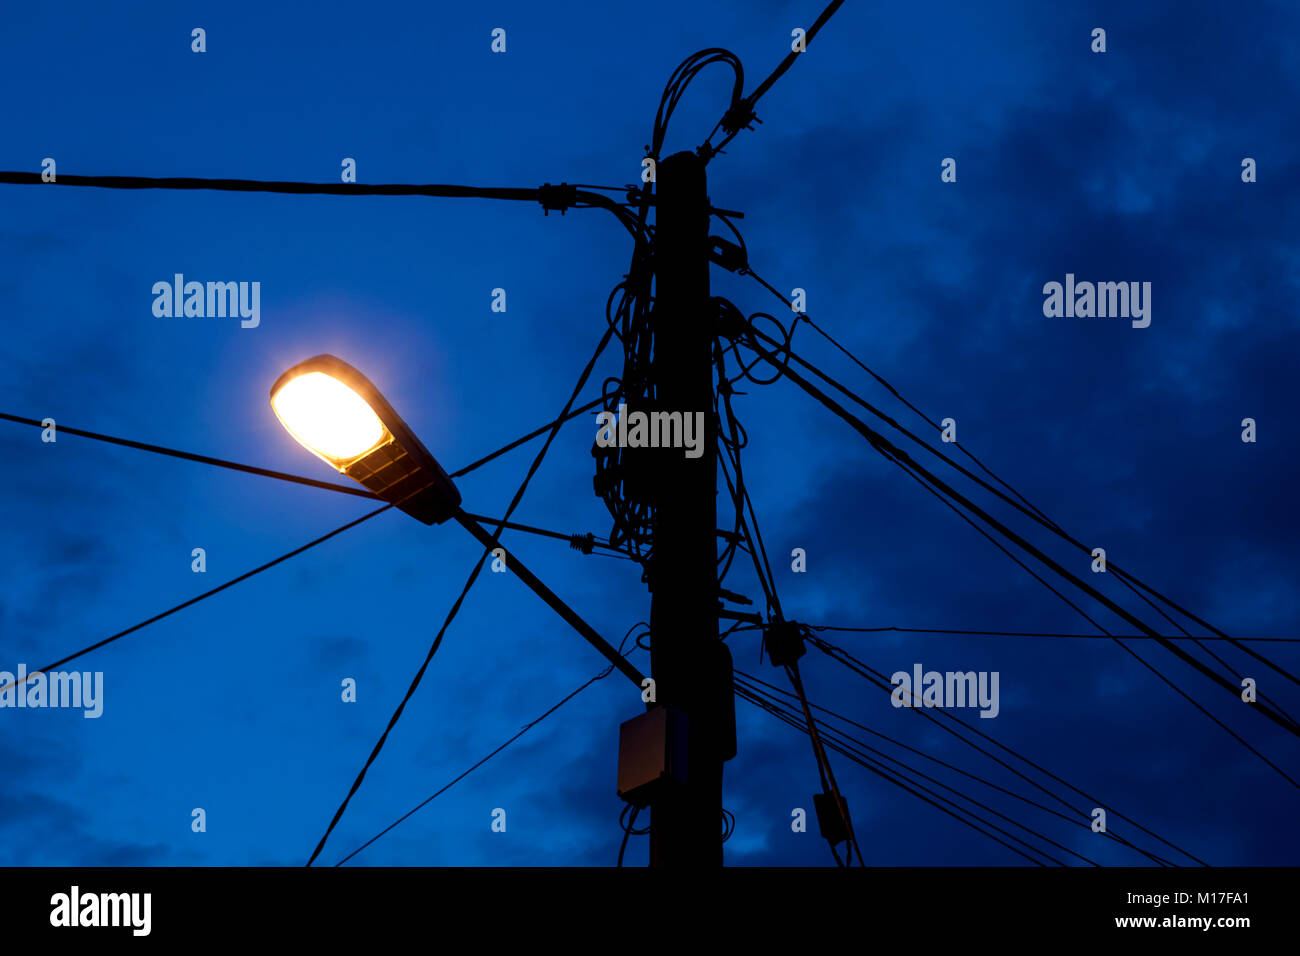 Overhead rural electricity power lines and telephone lines on a pole in a rural village in the U.K. - Stock Image